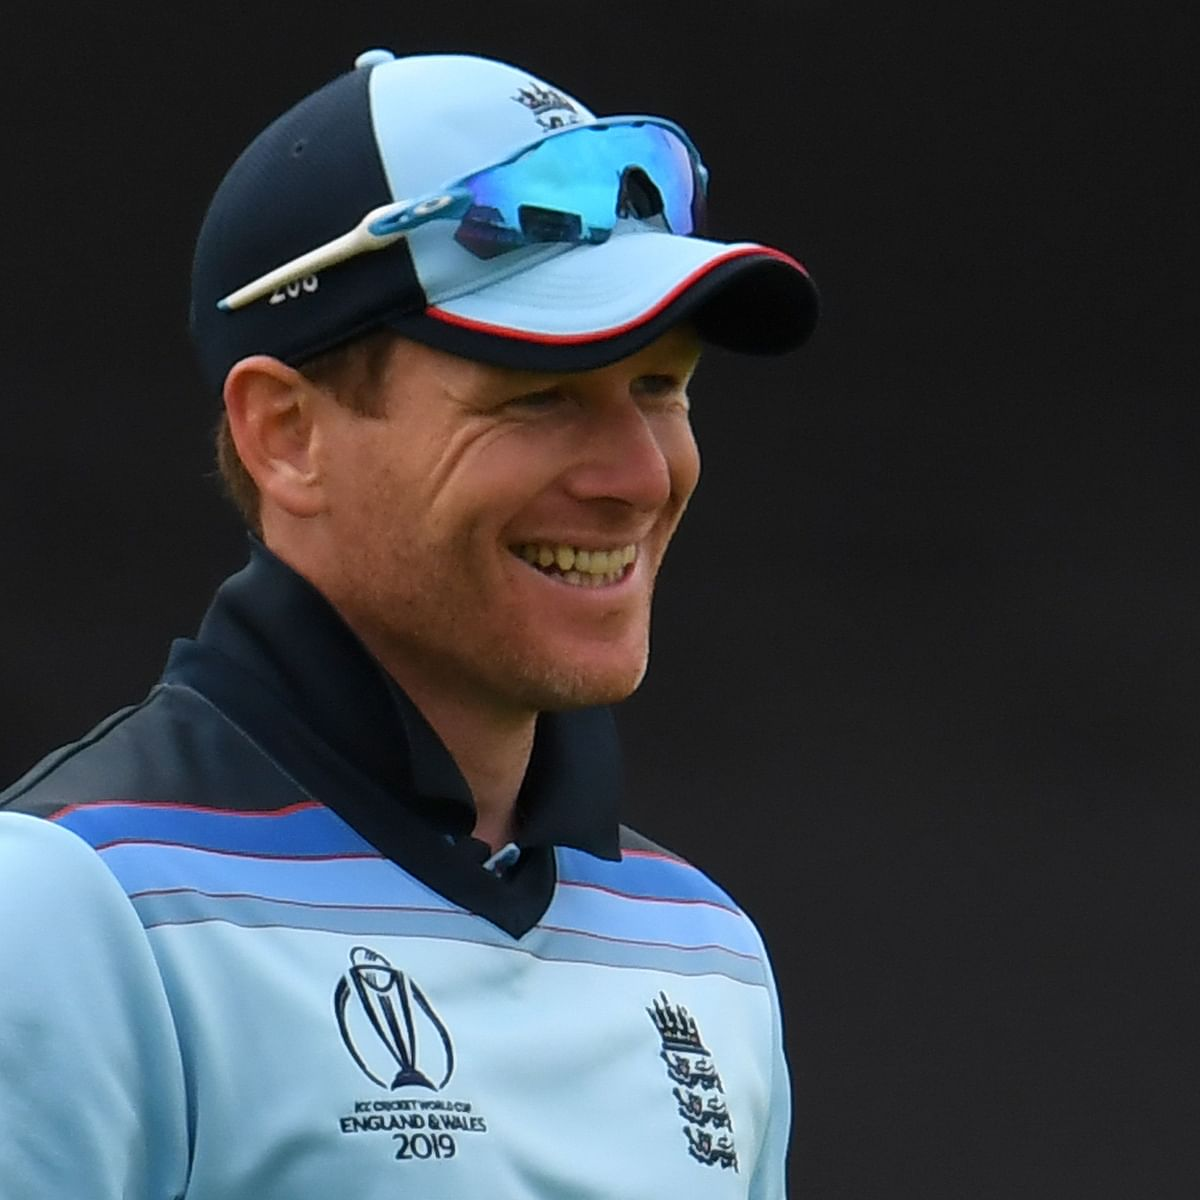 Eoin Morgan says no decision yet on future after World Cup win